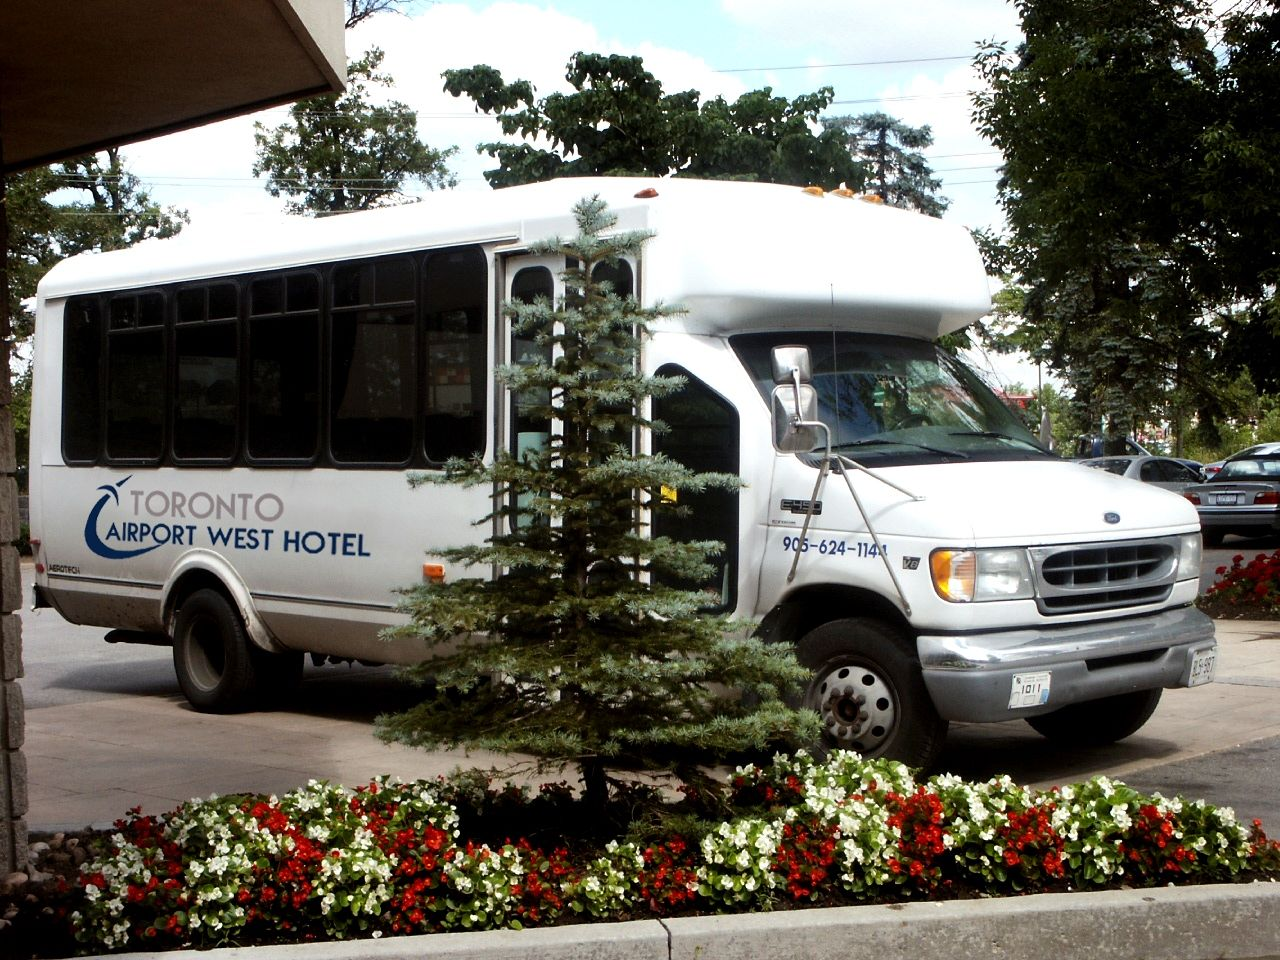 Hotel shuttle with images hotel summer photo